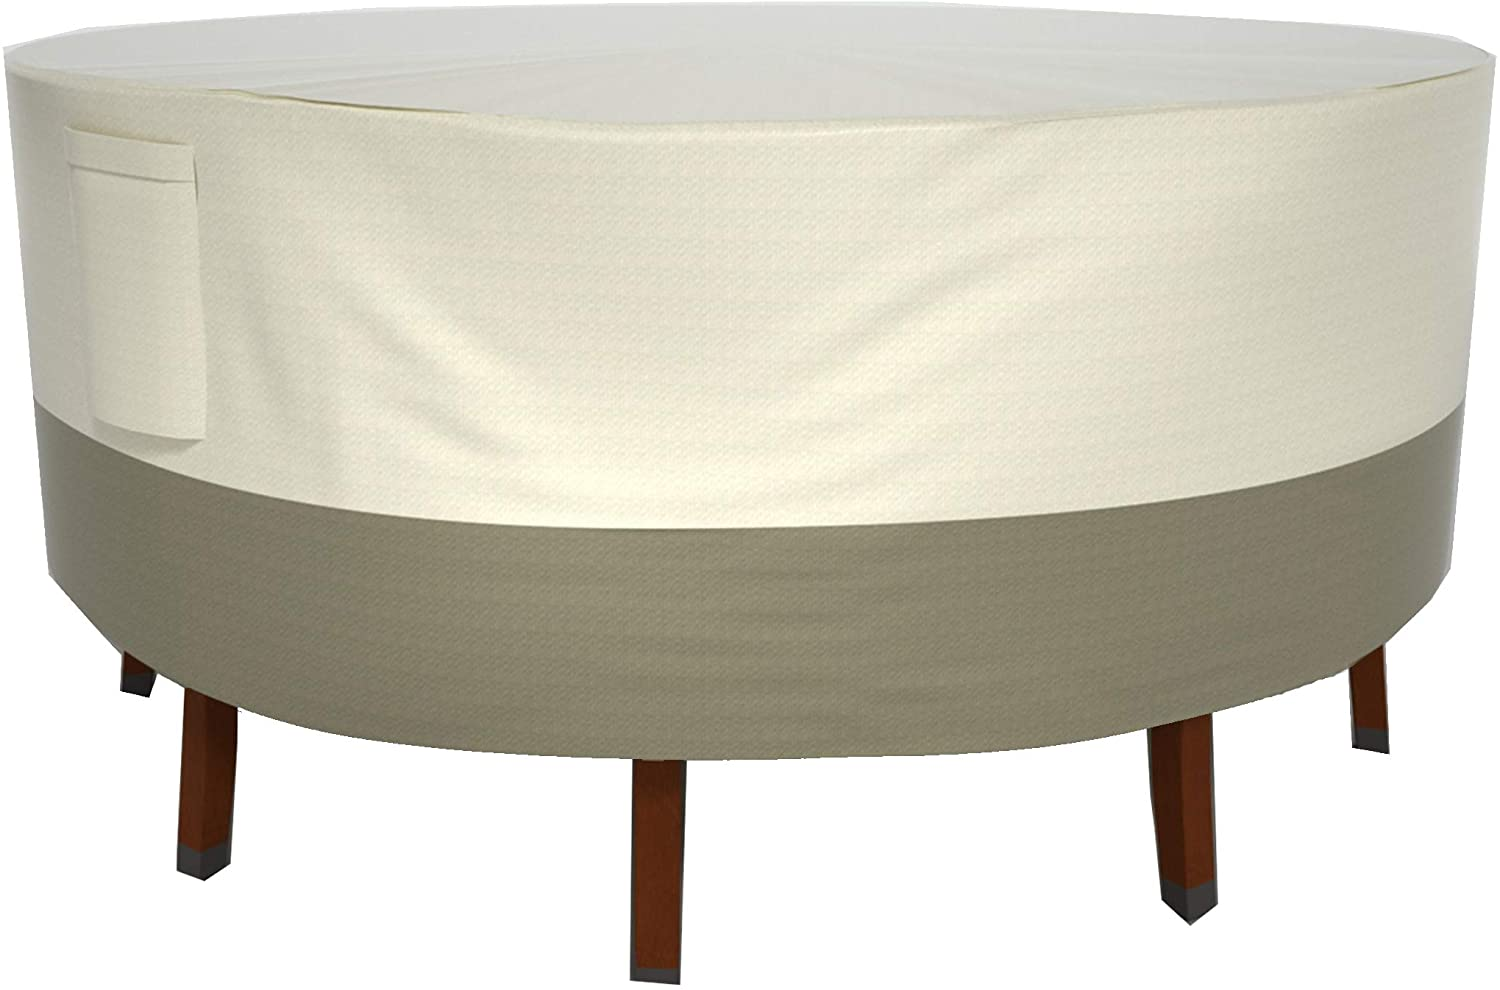 Wisteria Lane Patio Furniture Cover, Durable Waterproof Dustproof Veranda Outdoor Cover Suit for Rectangular/Round Dining Tables,94 x 28 inches,(Beige & Brown)